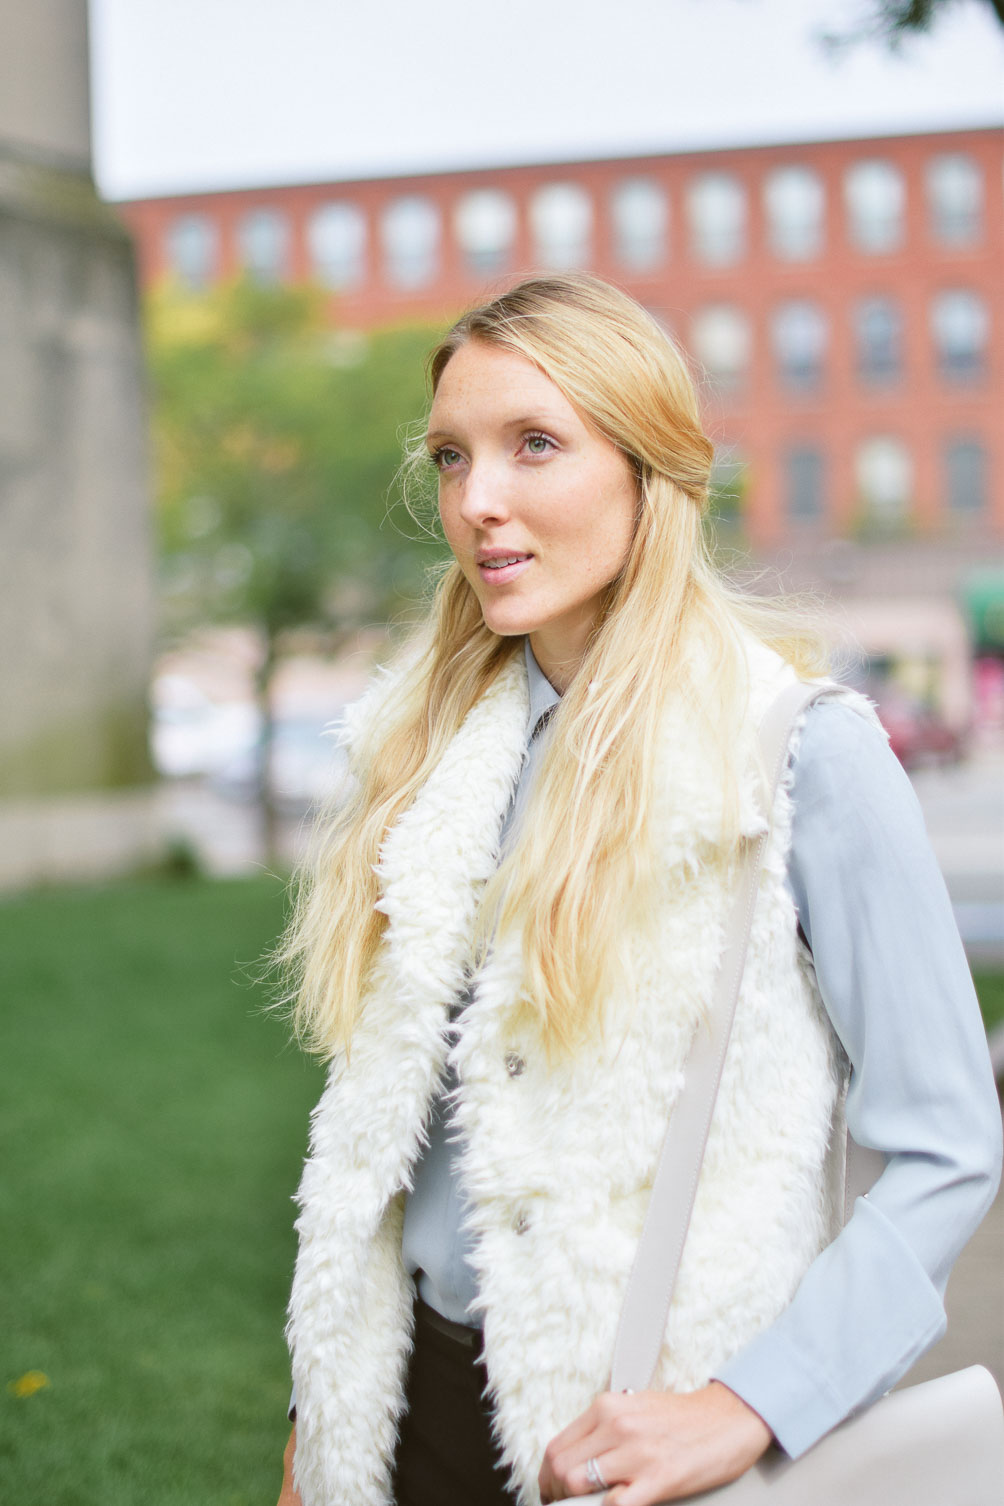 Leslie Mussser wear to work shearling vest for fall on one brass fox